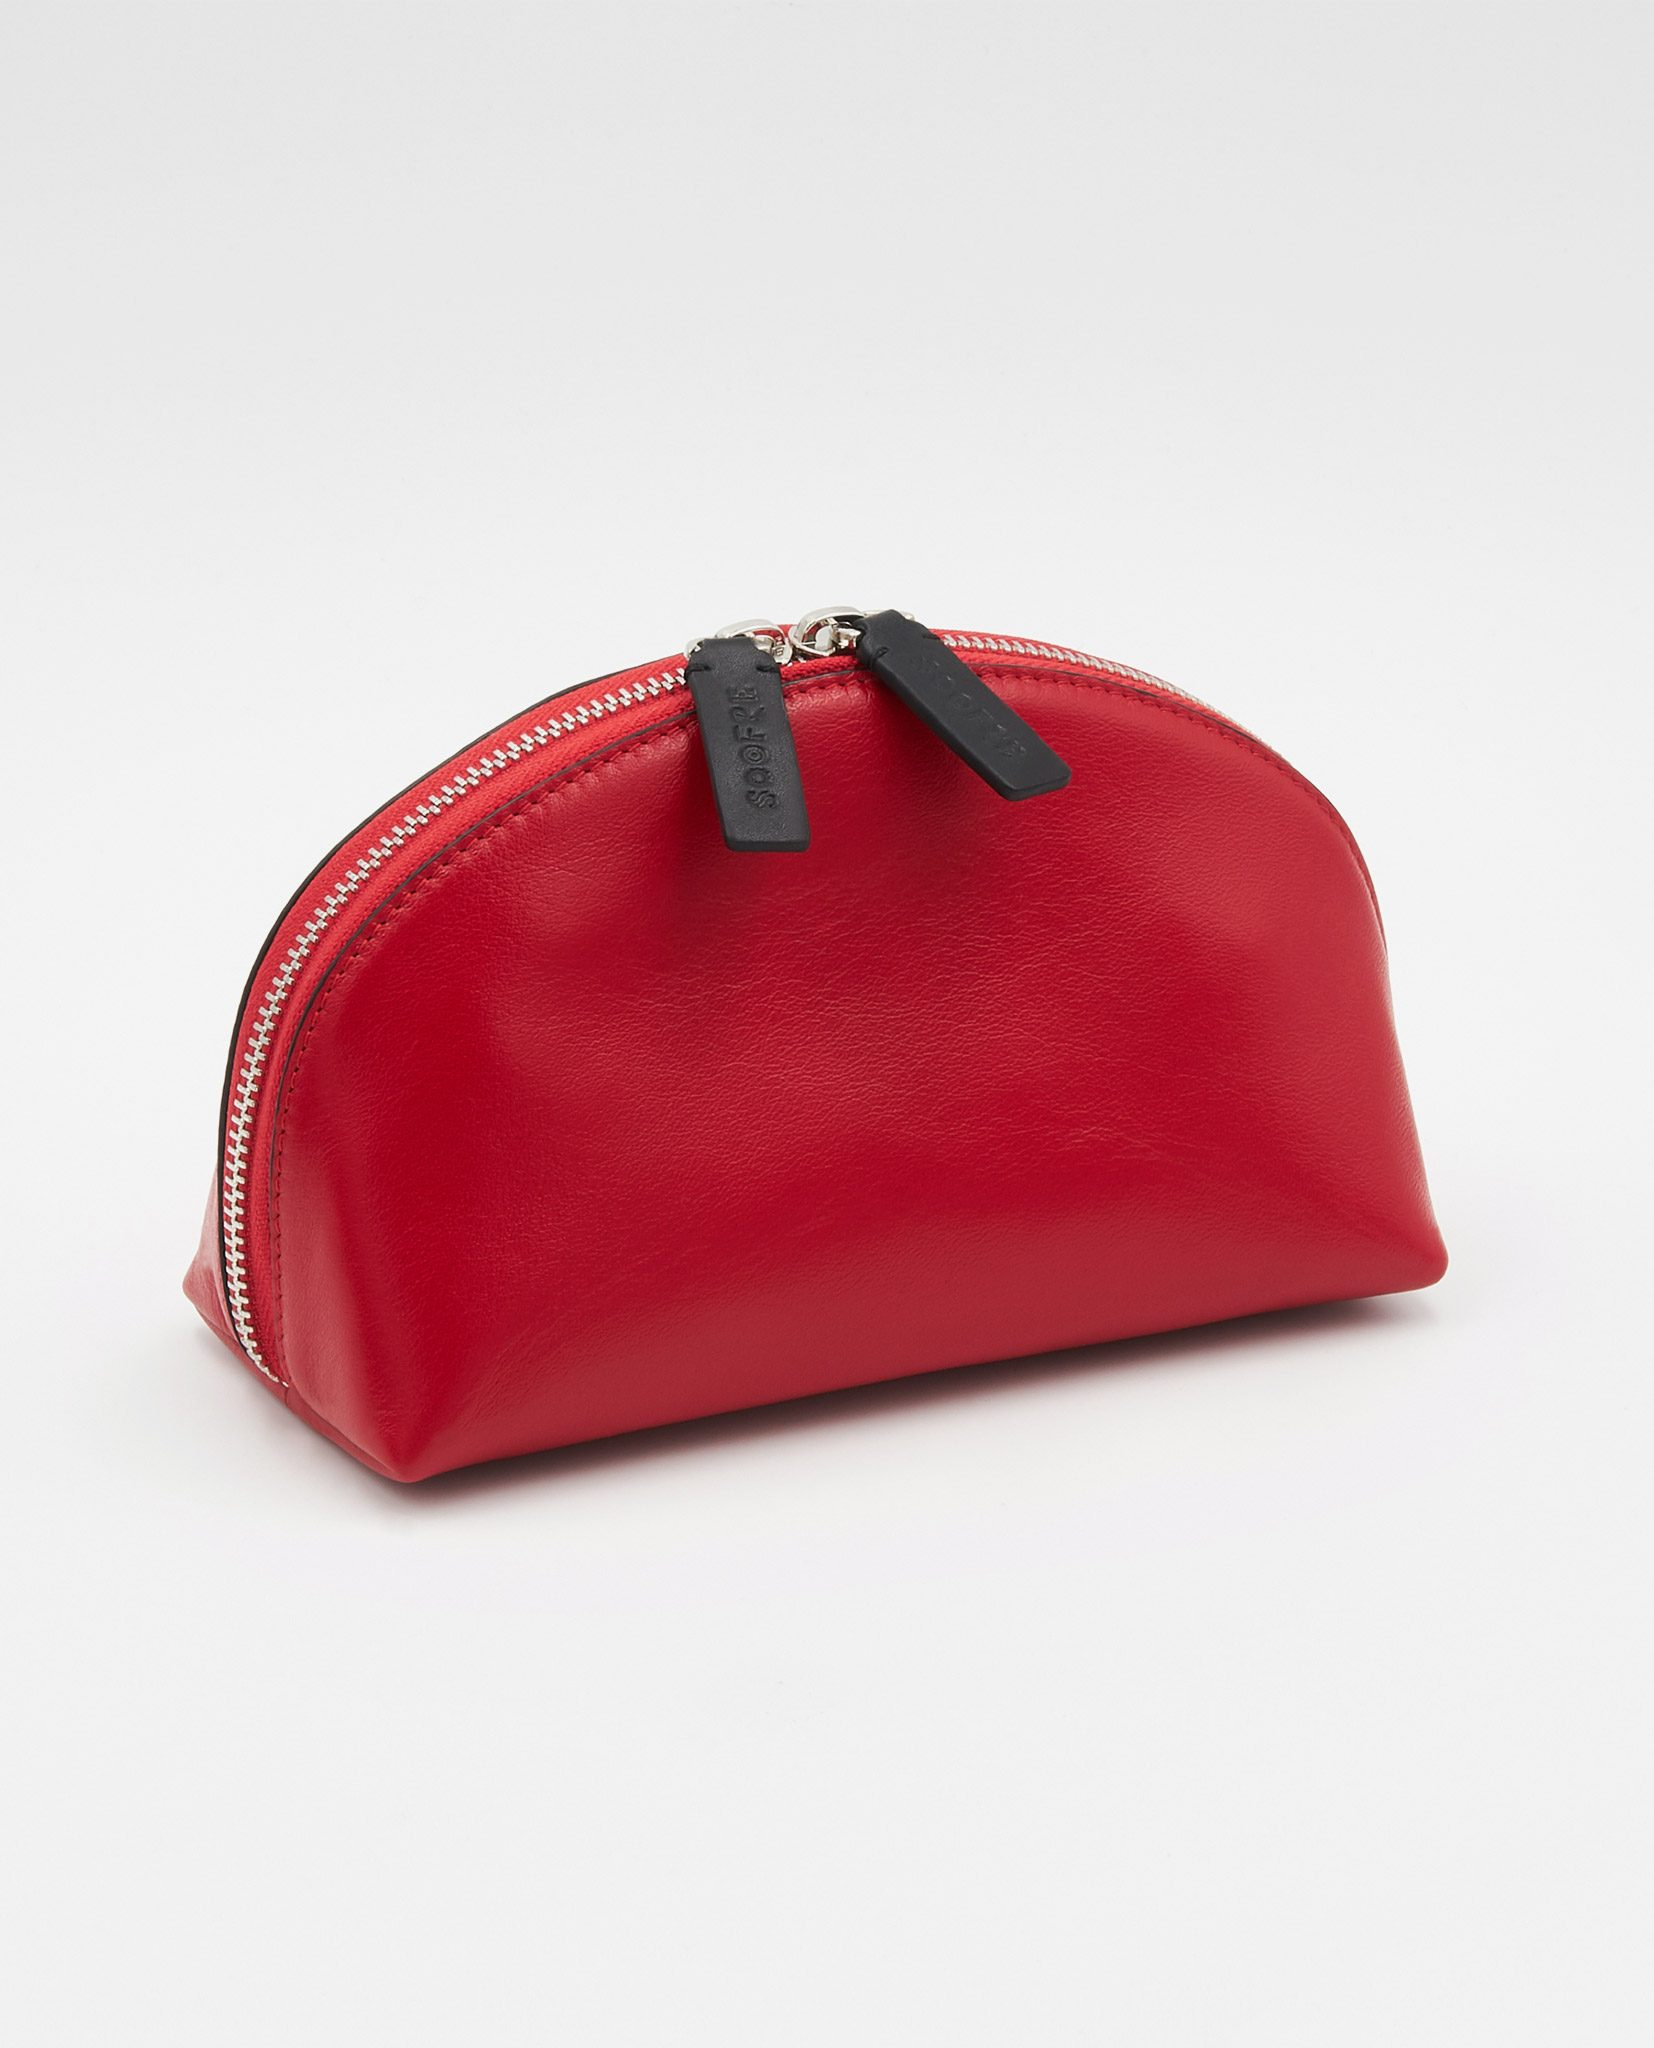 Soofre_Cosmetic-Bag_Red-Black-1